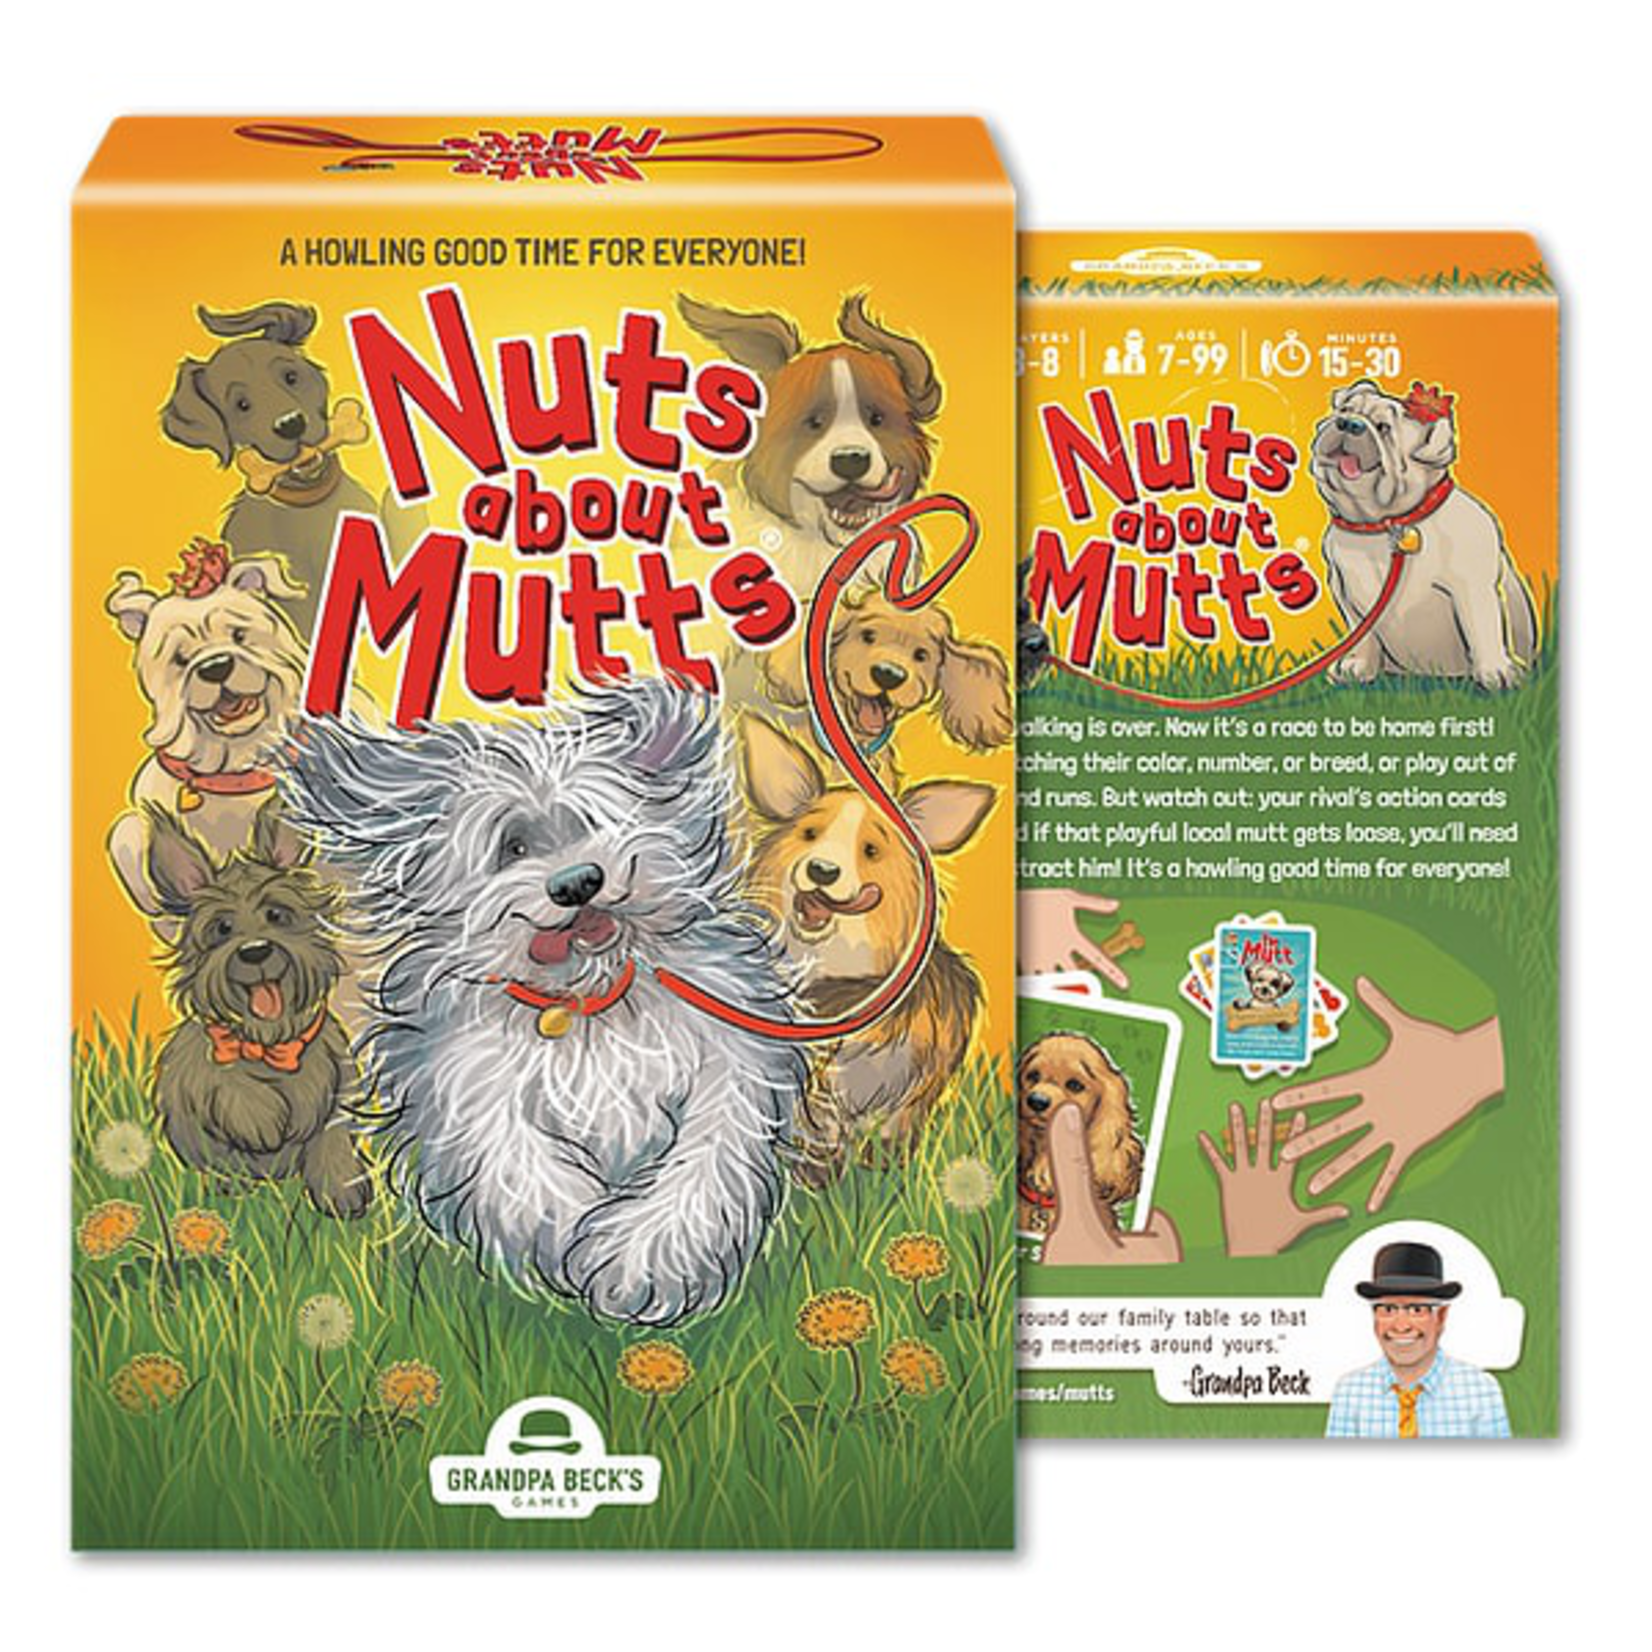 Grandpa Beck Nuts about Mutts